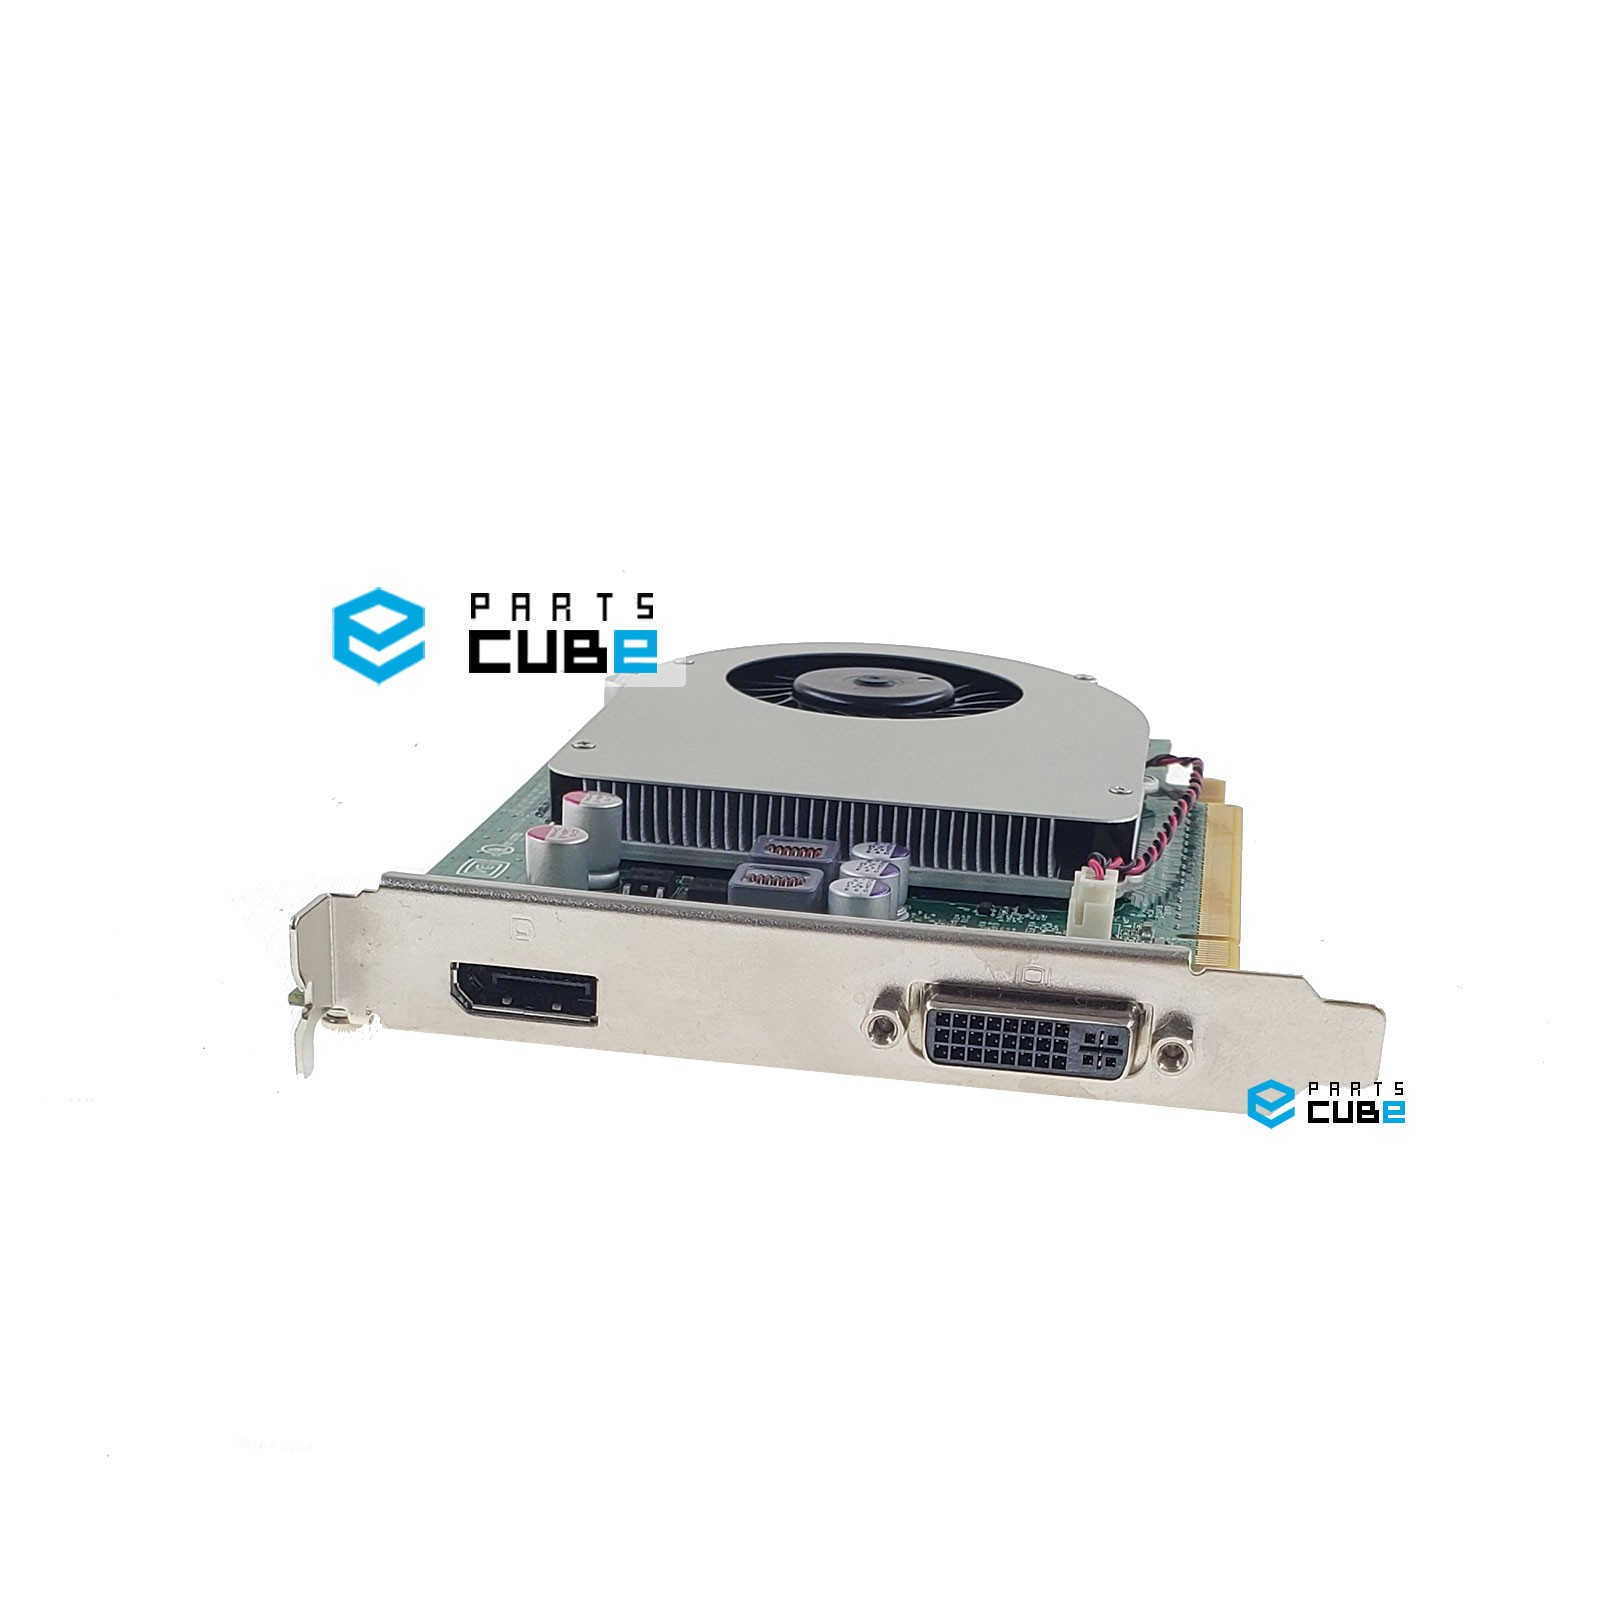 Dell inspiron 660s pci e slot